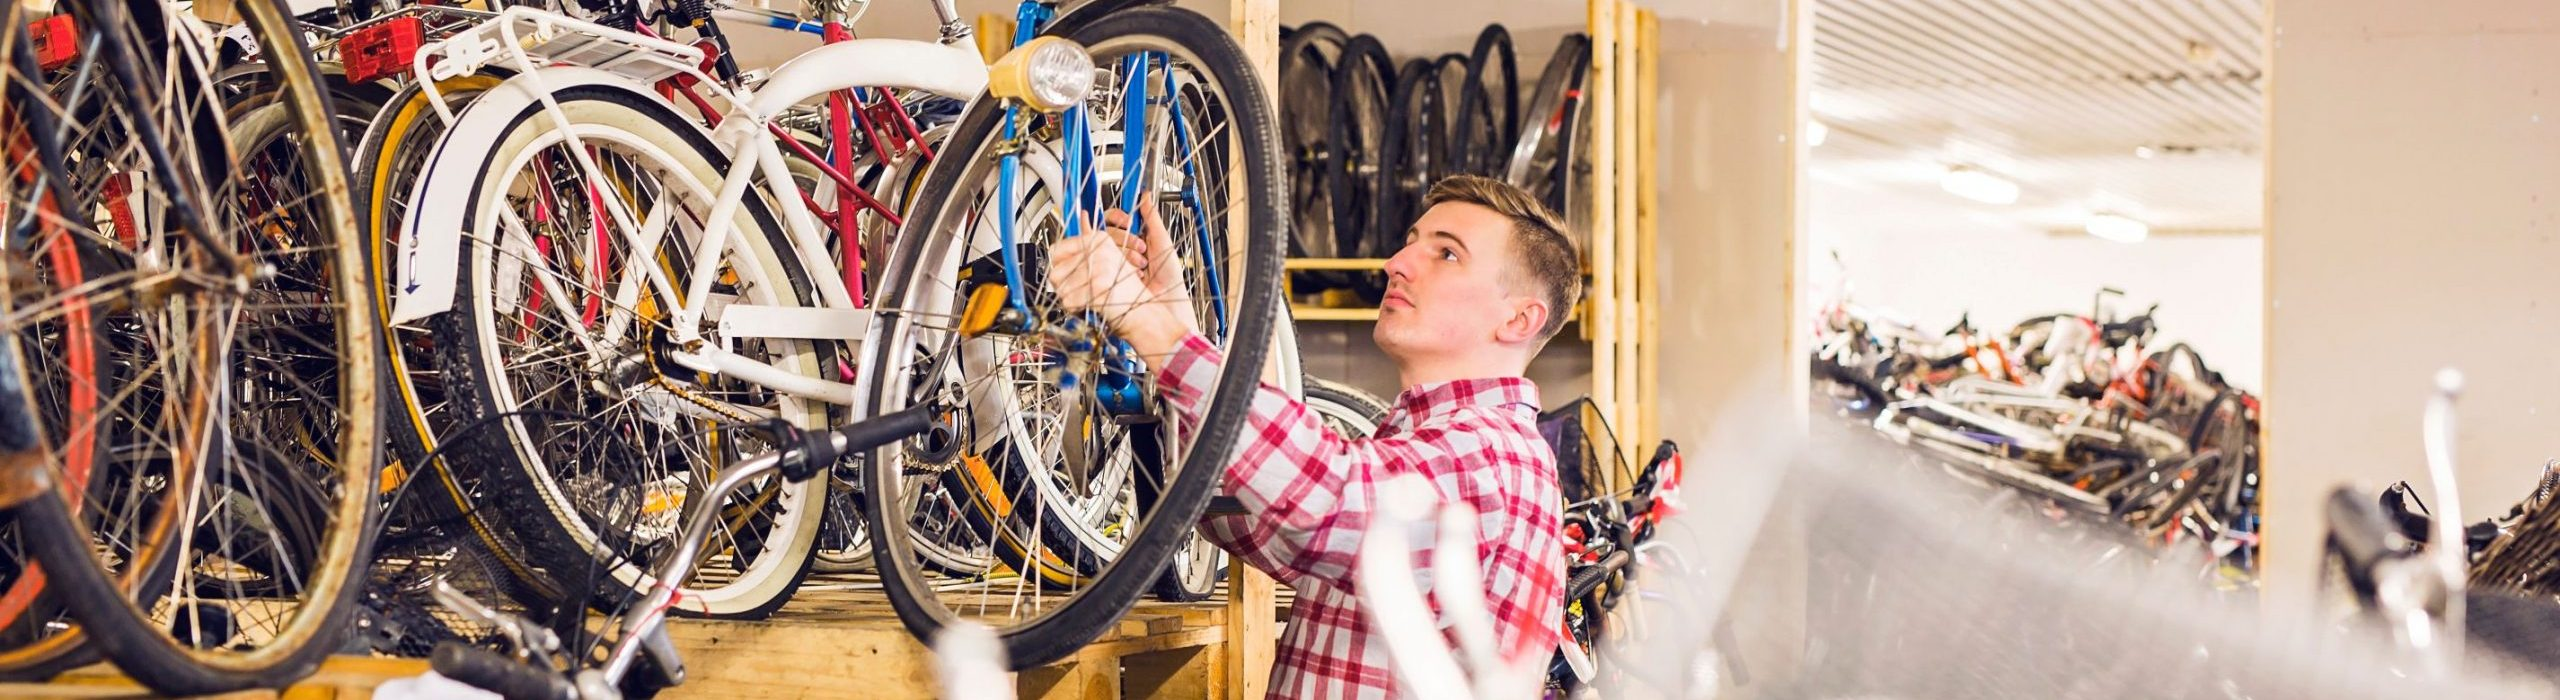 side-view-of-mechanic-working-in-bicycle-shop-JCFE43R (1)